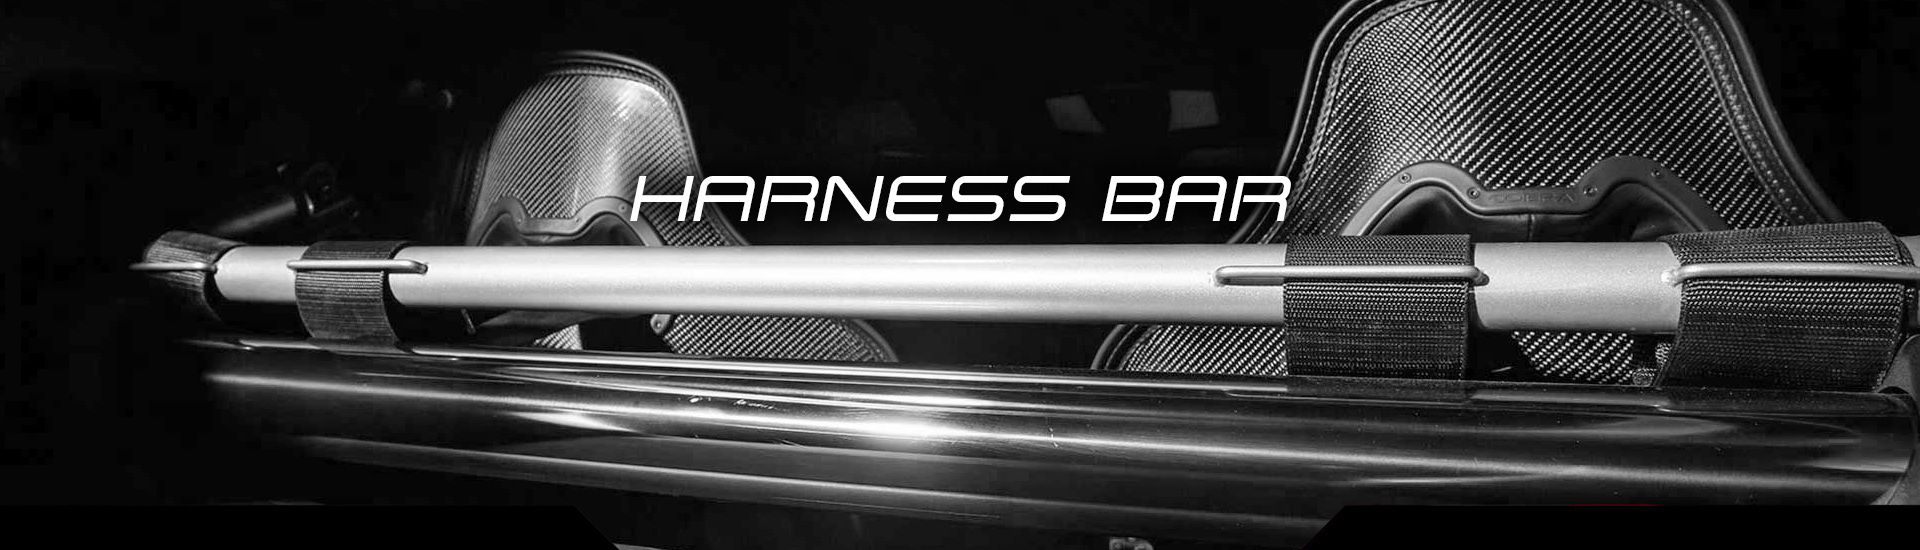 harness_bar_category